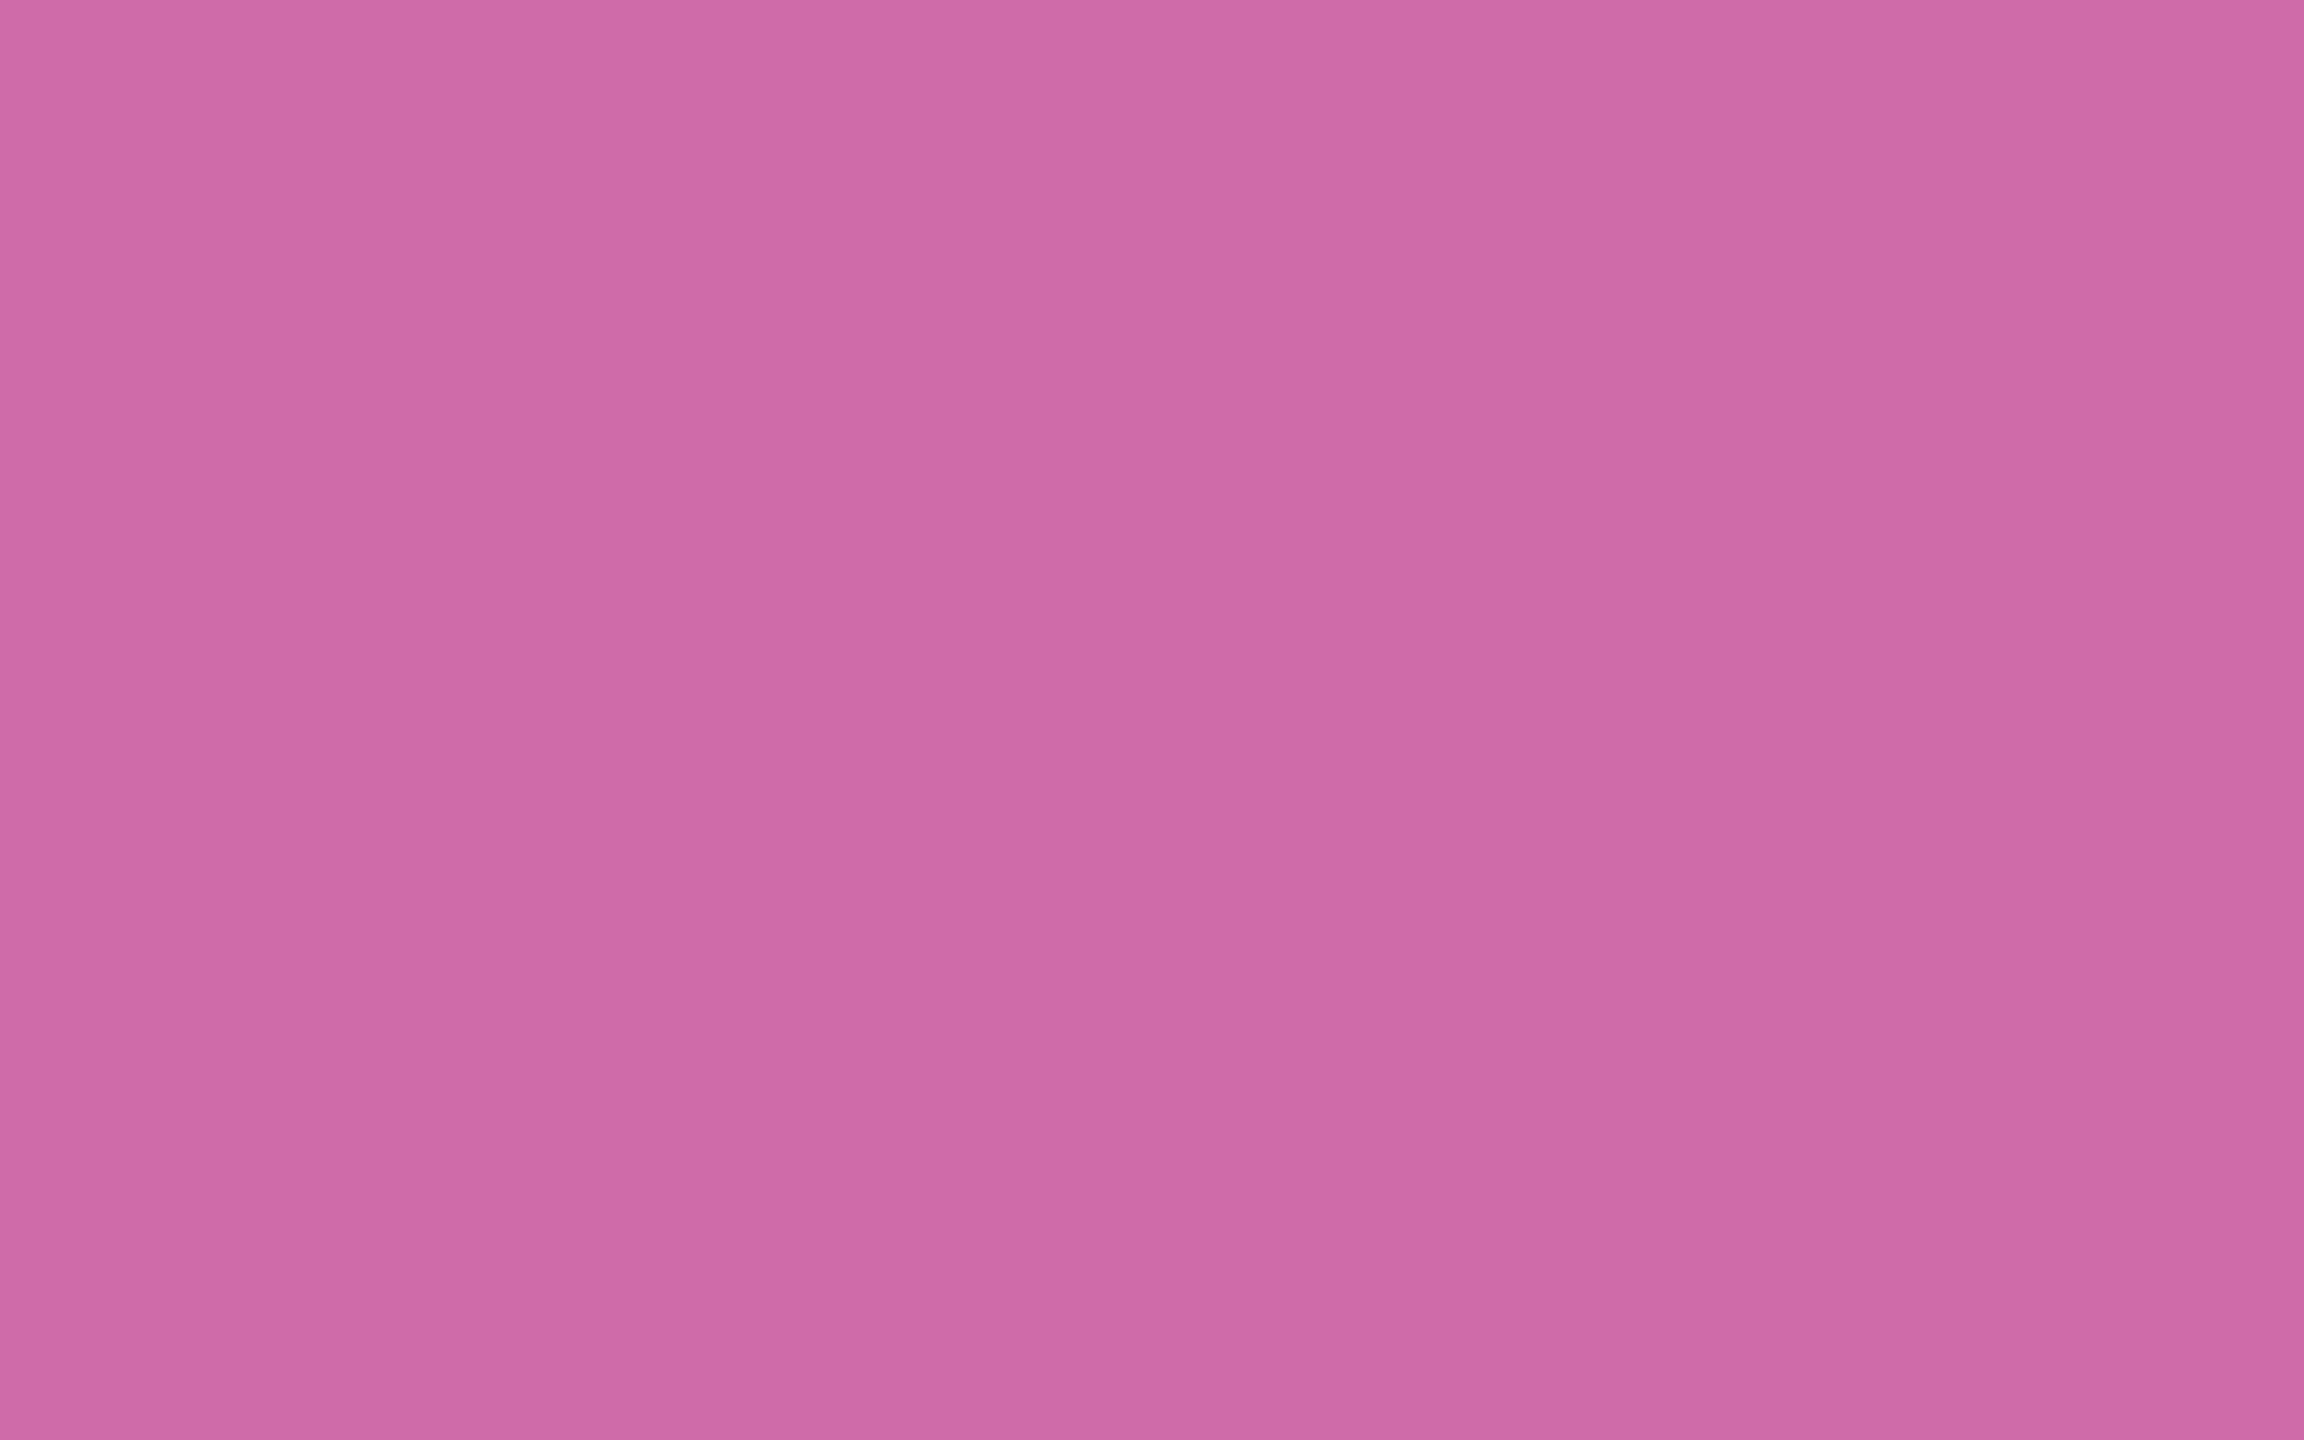 2304x1440 Super Pink Solid Color Background